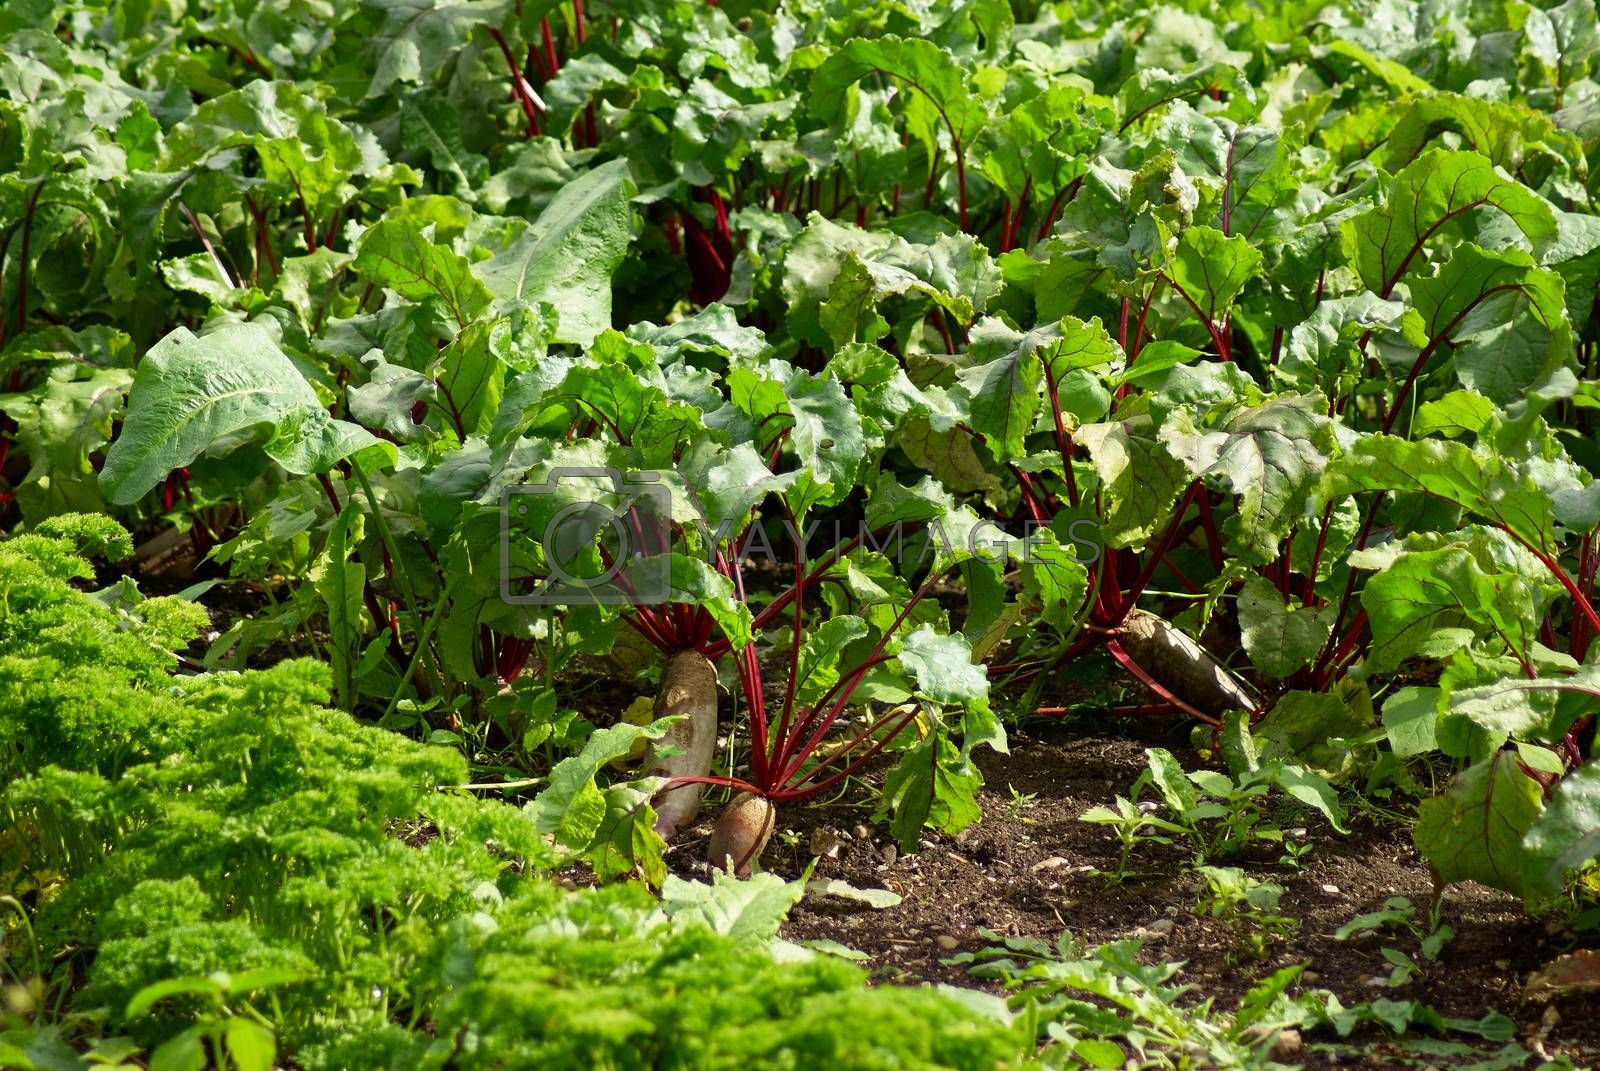 Royalty free image of Field of beetroot red beets by Ronyzmbow